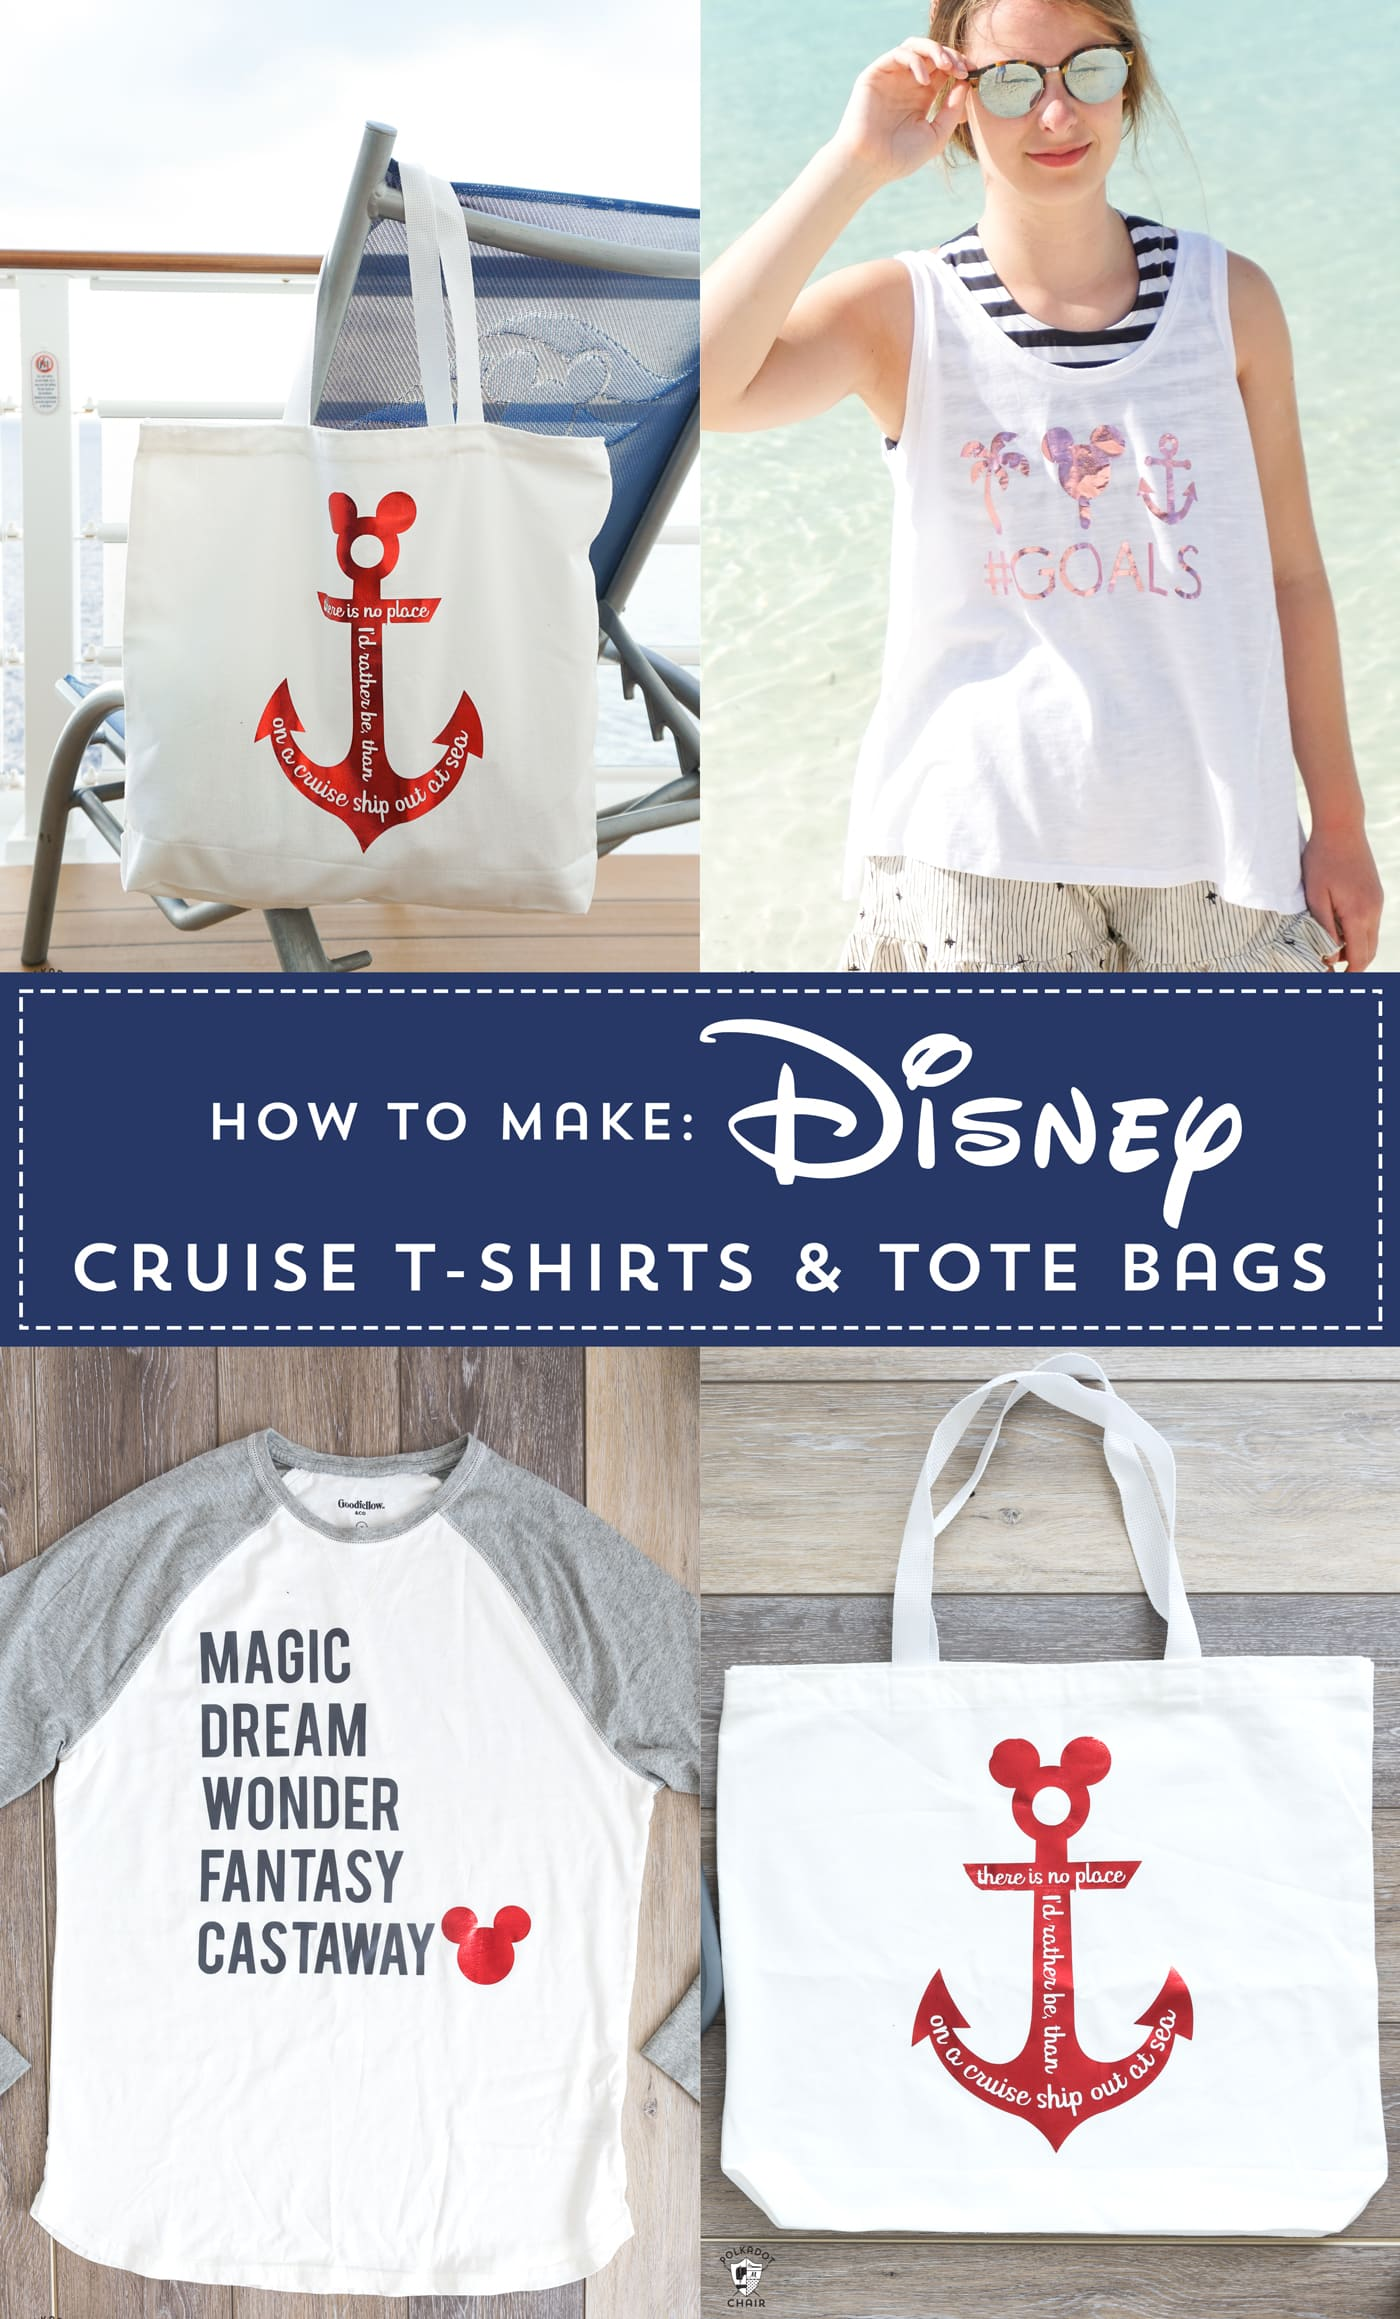 How To Make Disney Family Shirts For A Disney Cruise